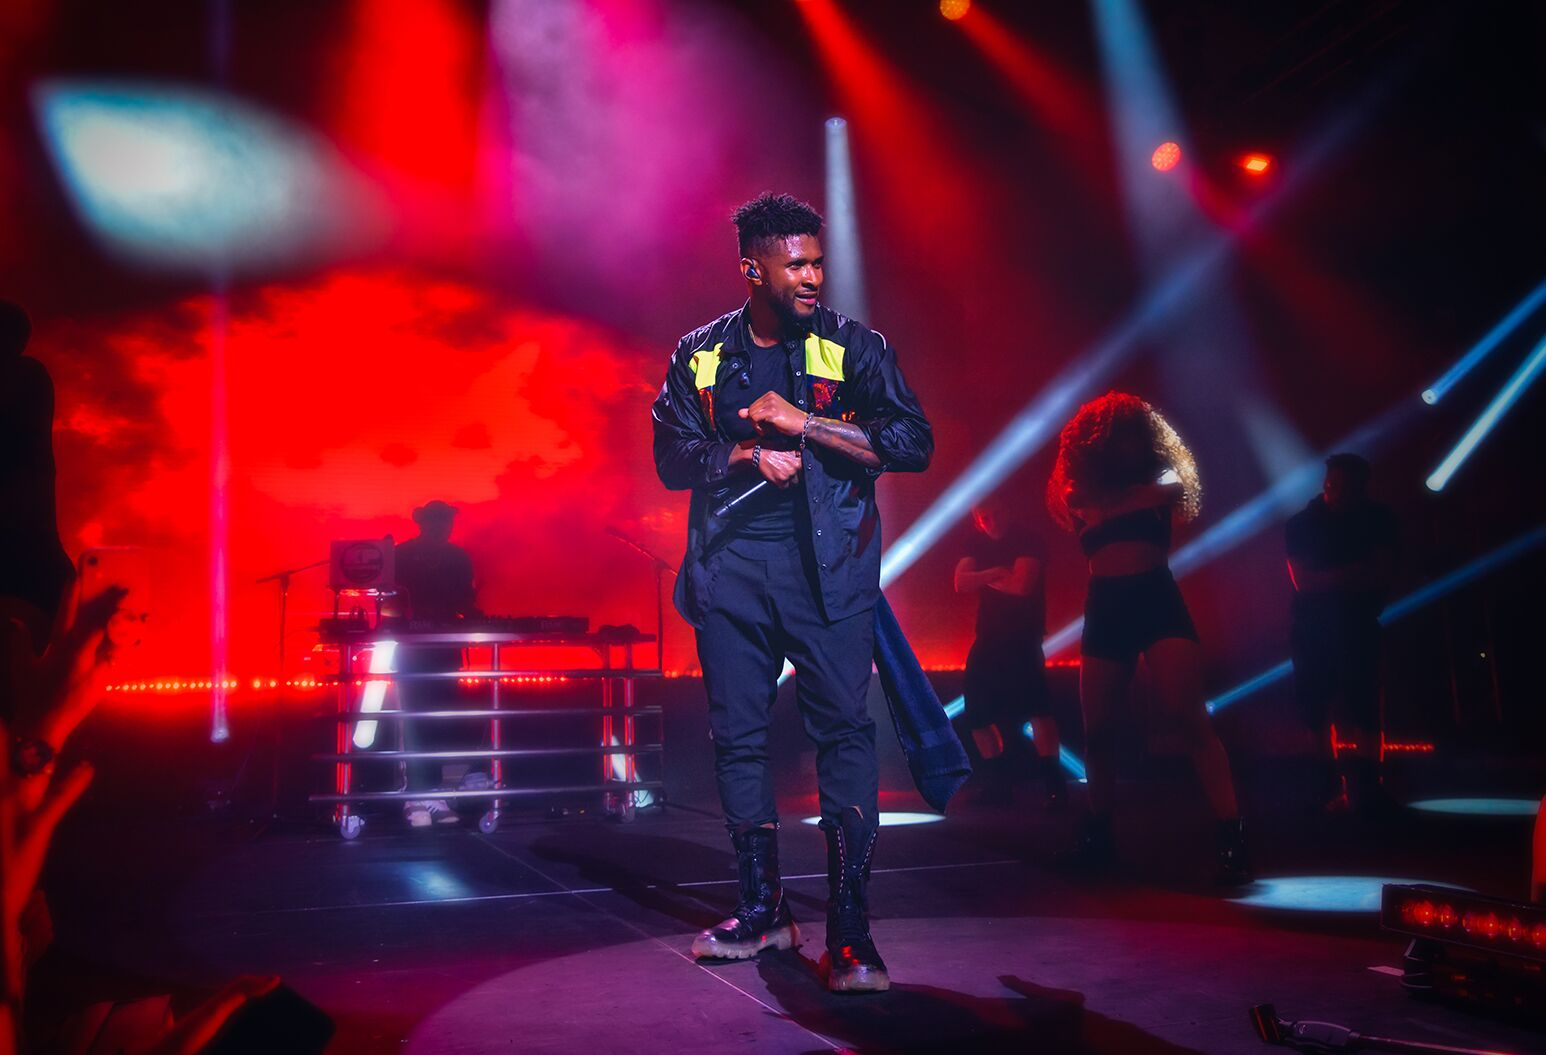 Usher performed at Northwell Health's 14th annual Feinstein Institutes for Medical Research Summer Concert, which raised $3.4 million to support research innovation.